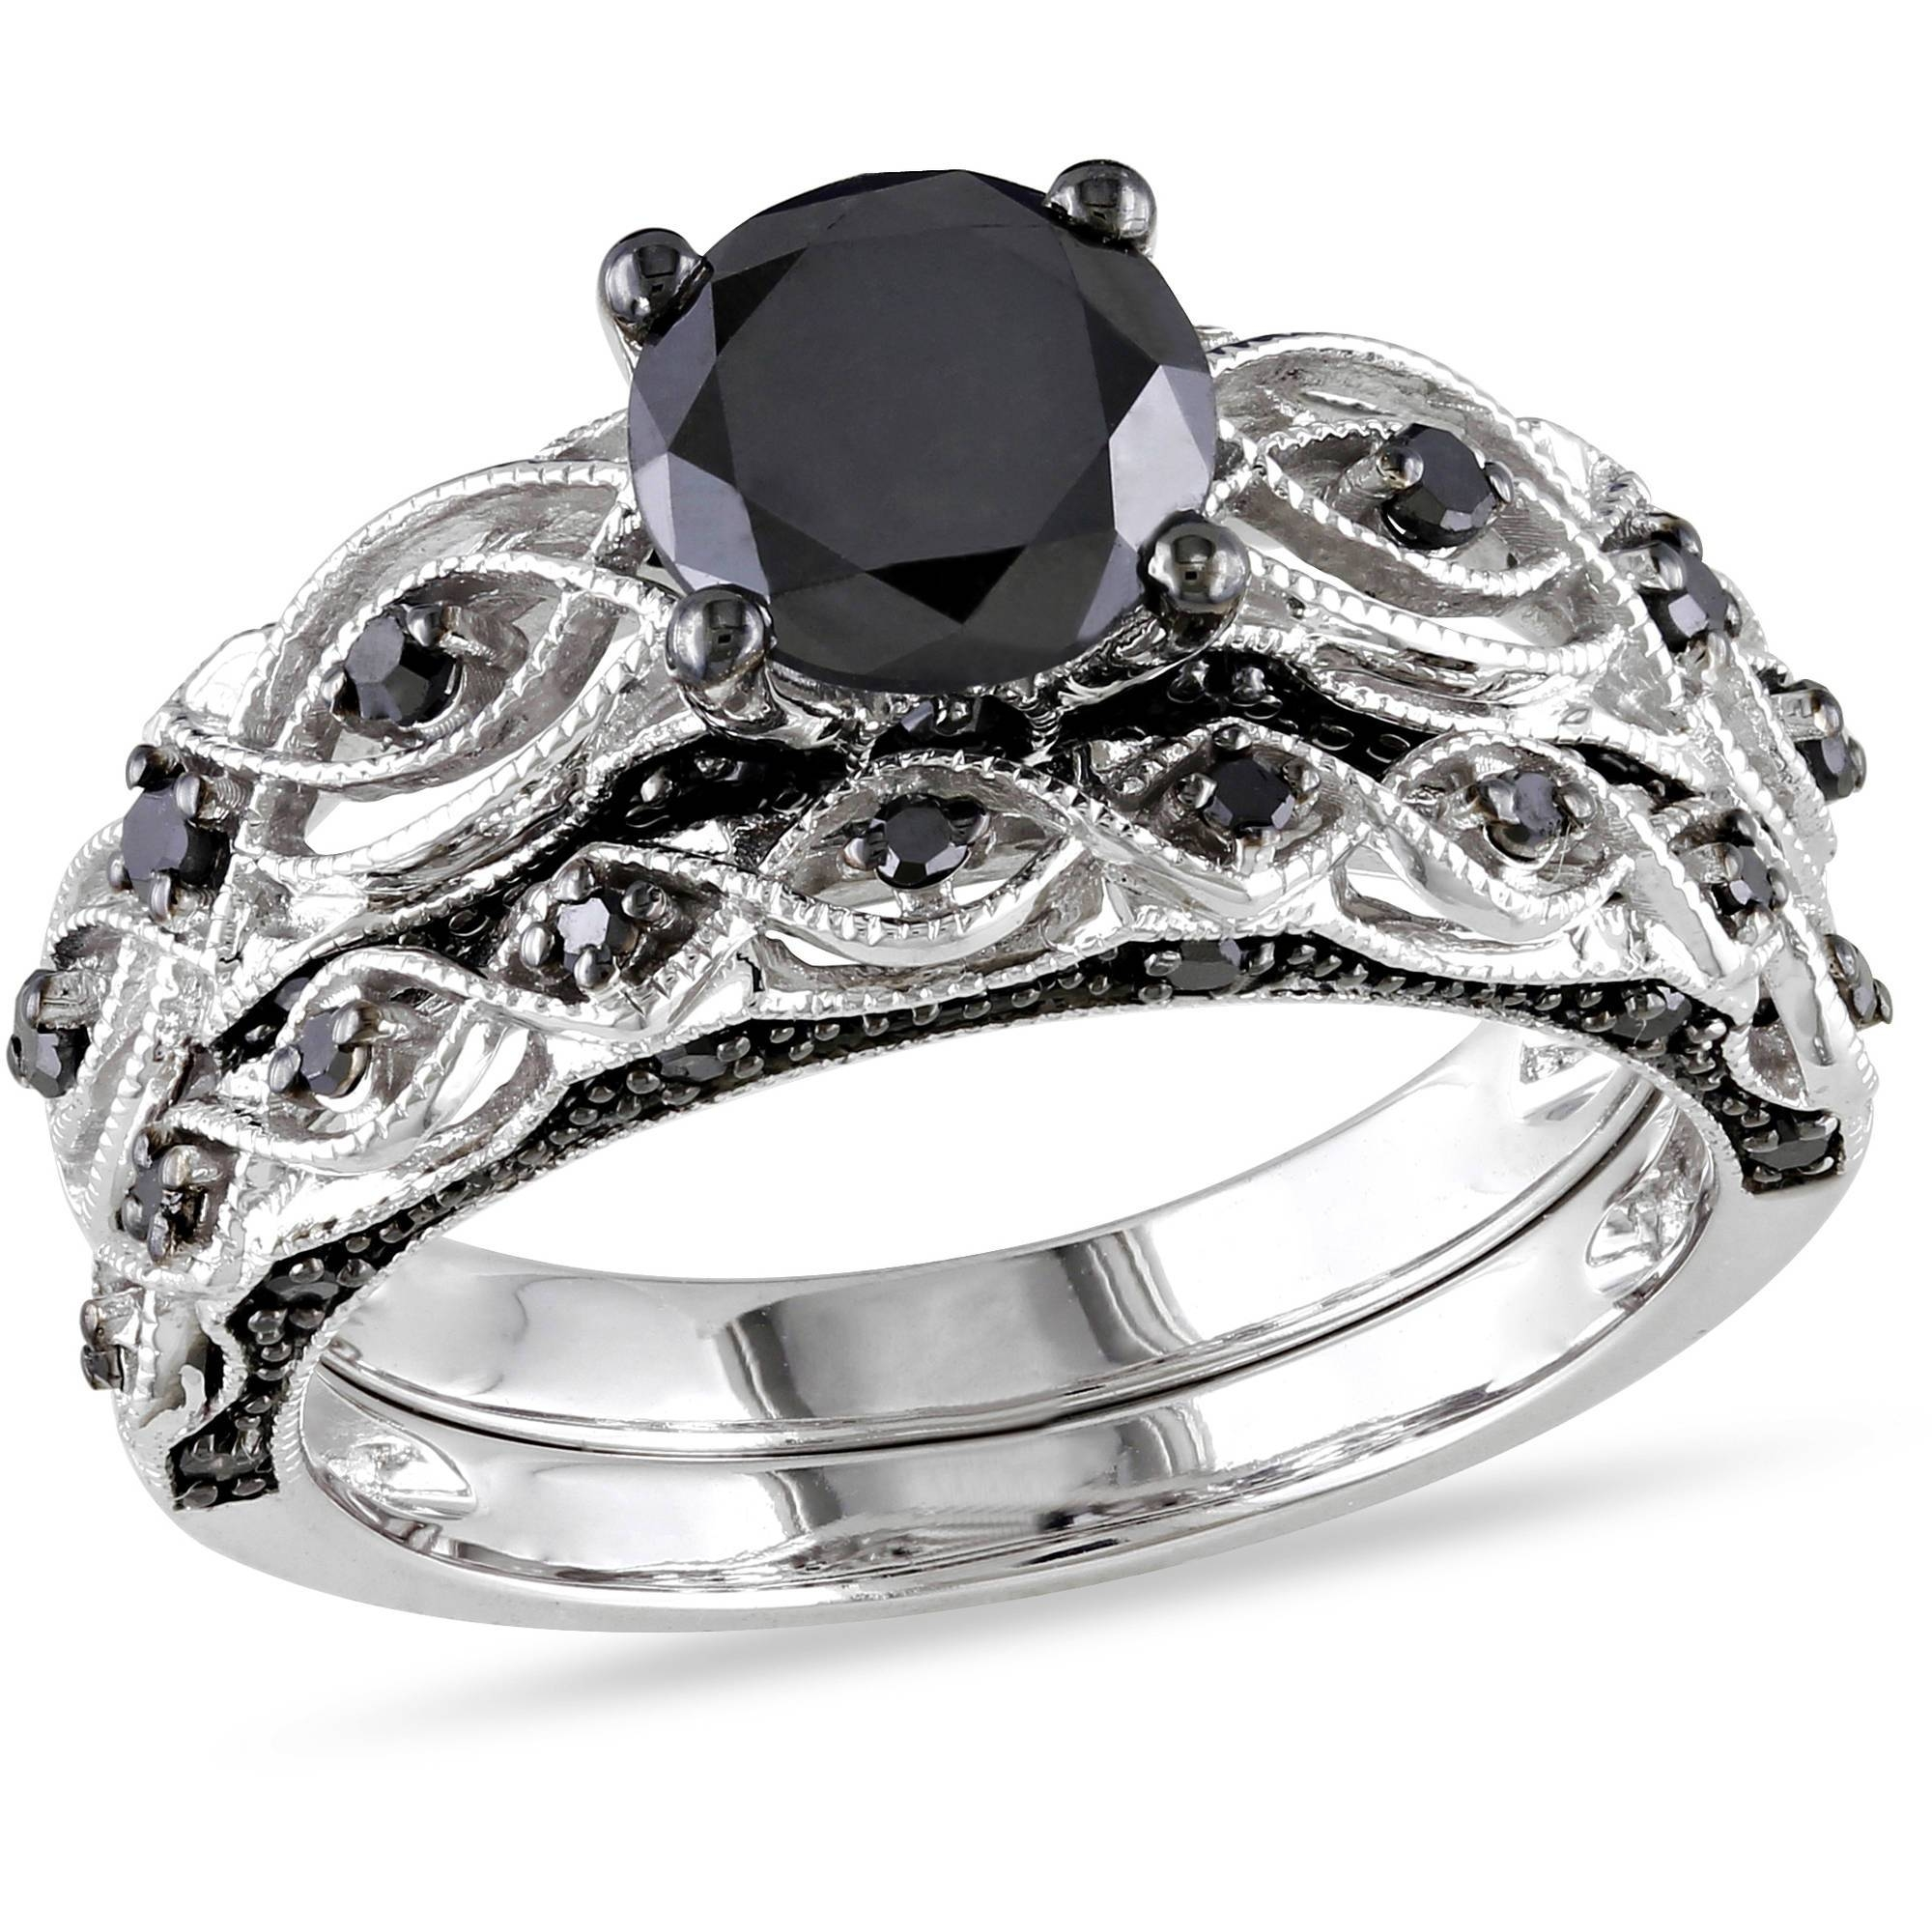 Wedding Rings : Chocolate Diamonds Ring At Zales | Caymancode For Throughout Zales Mens Engagement Rings (View 4 of 15)